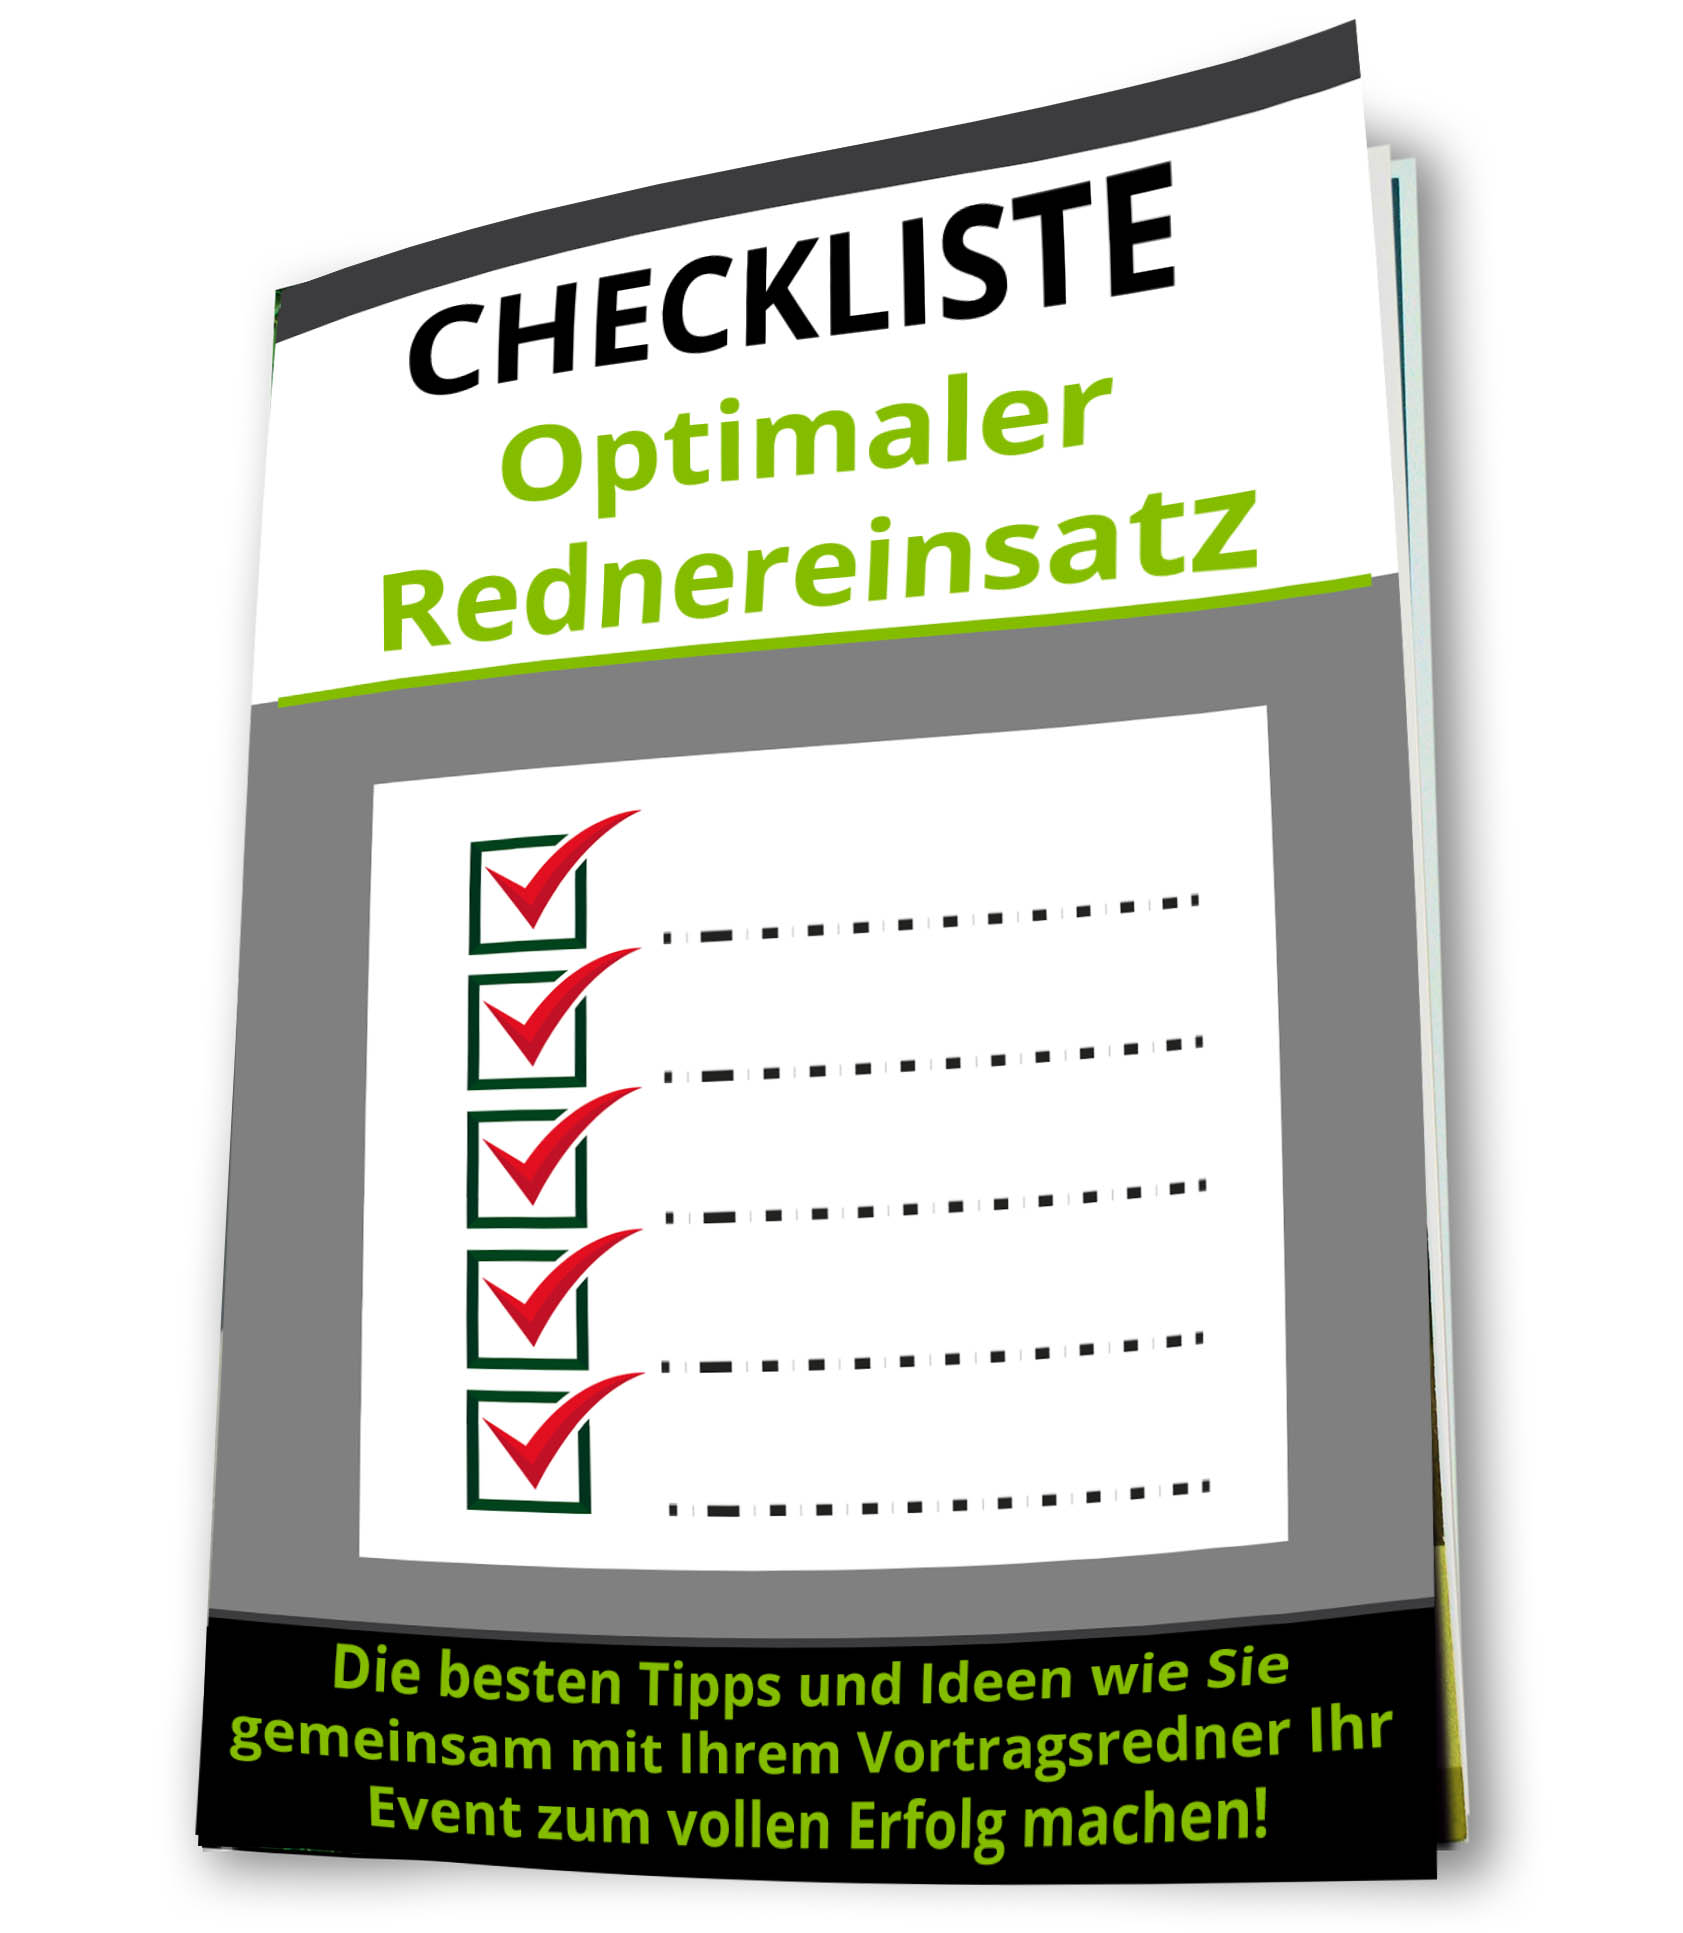 Optimaler Rednereinsatz - Checkliste - Roman Kmenta - Vortragsredner, Keynote Speaker